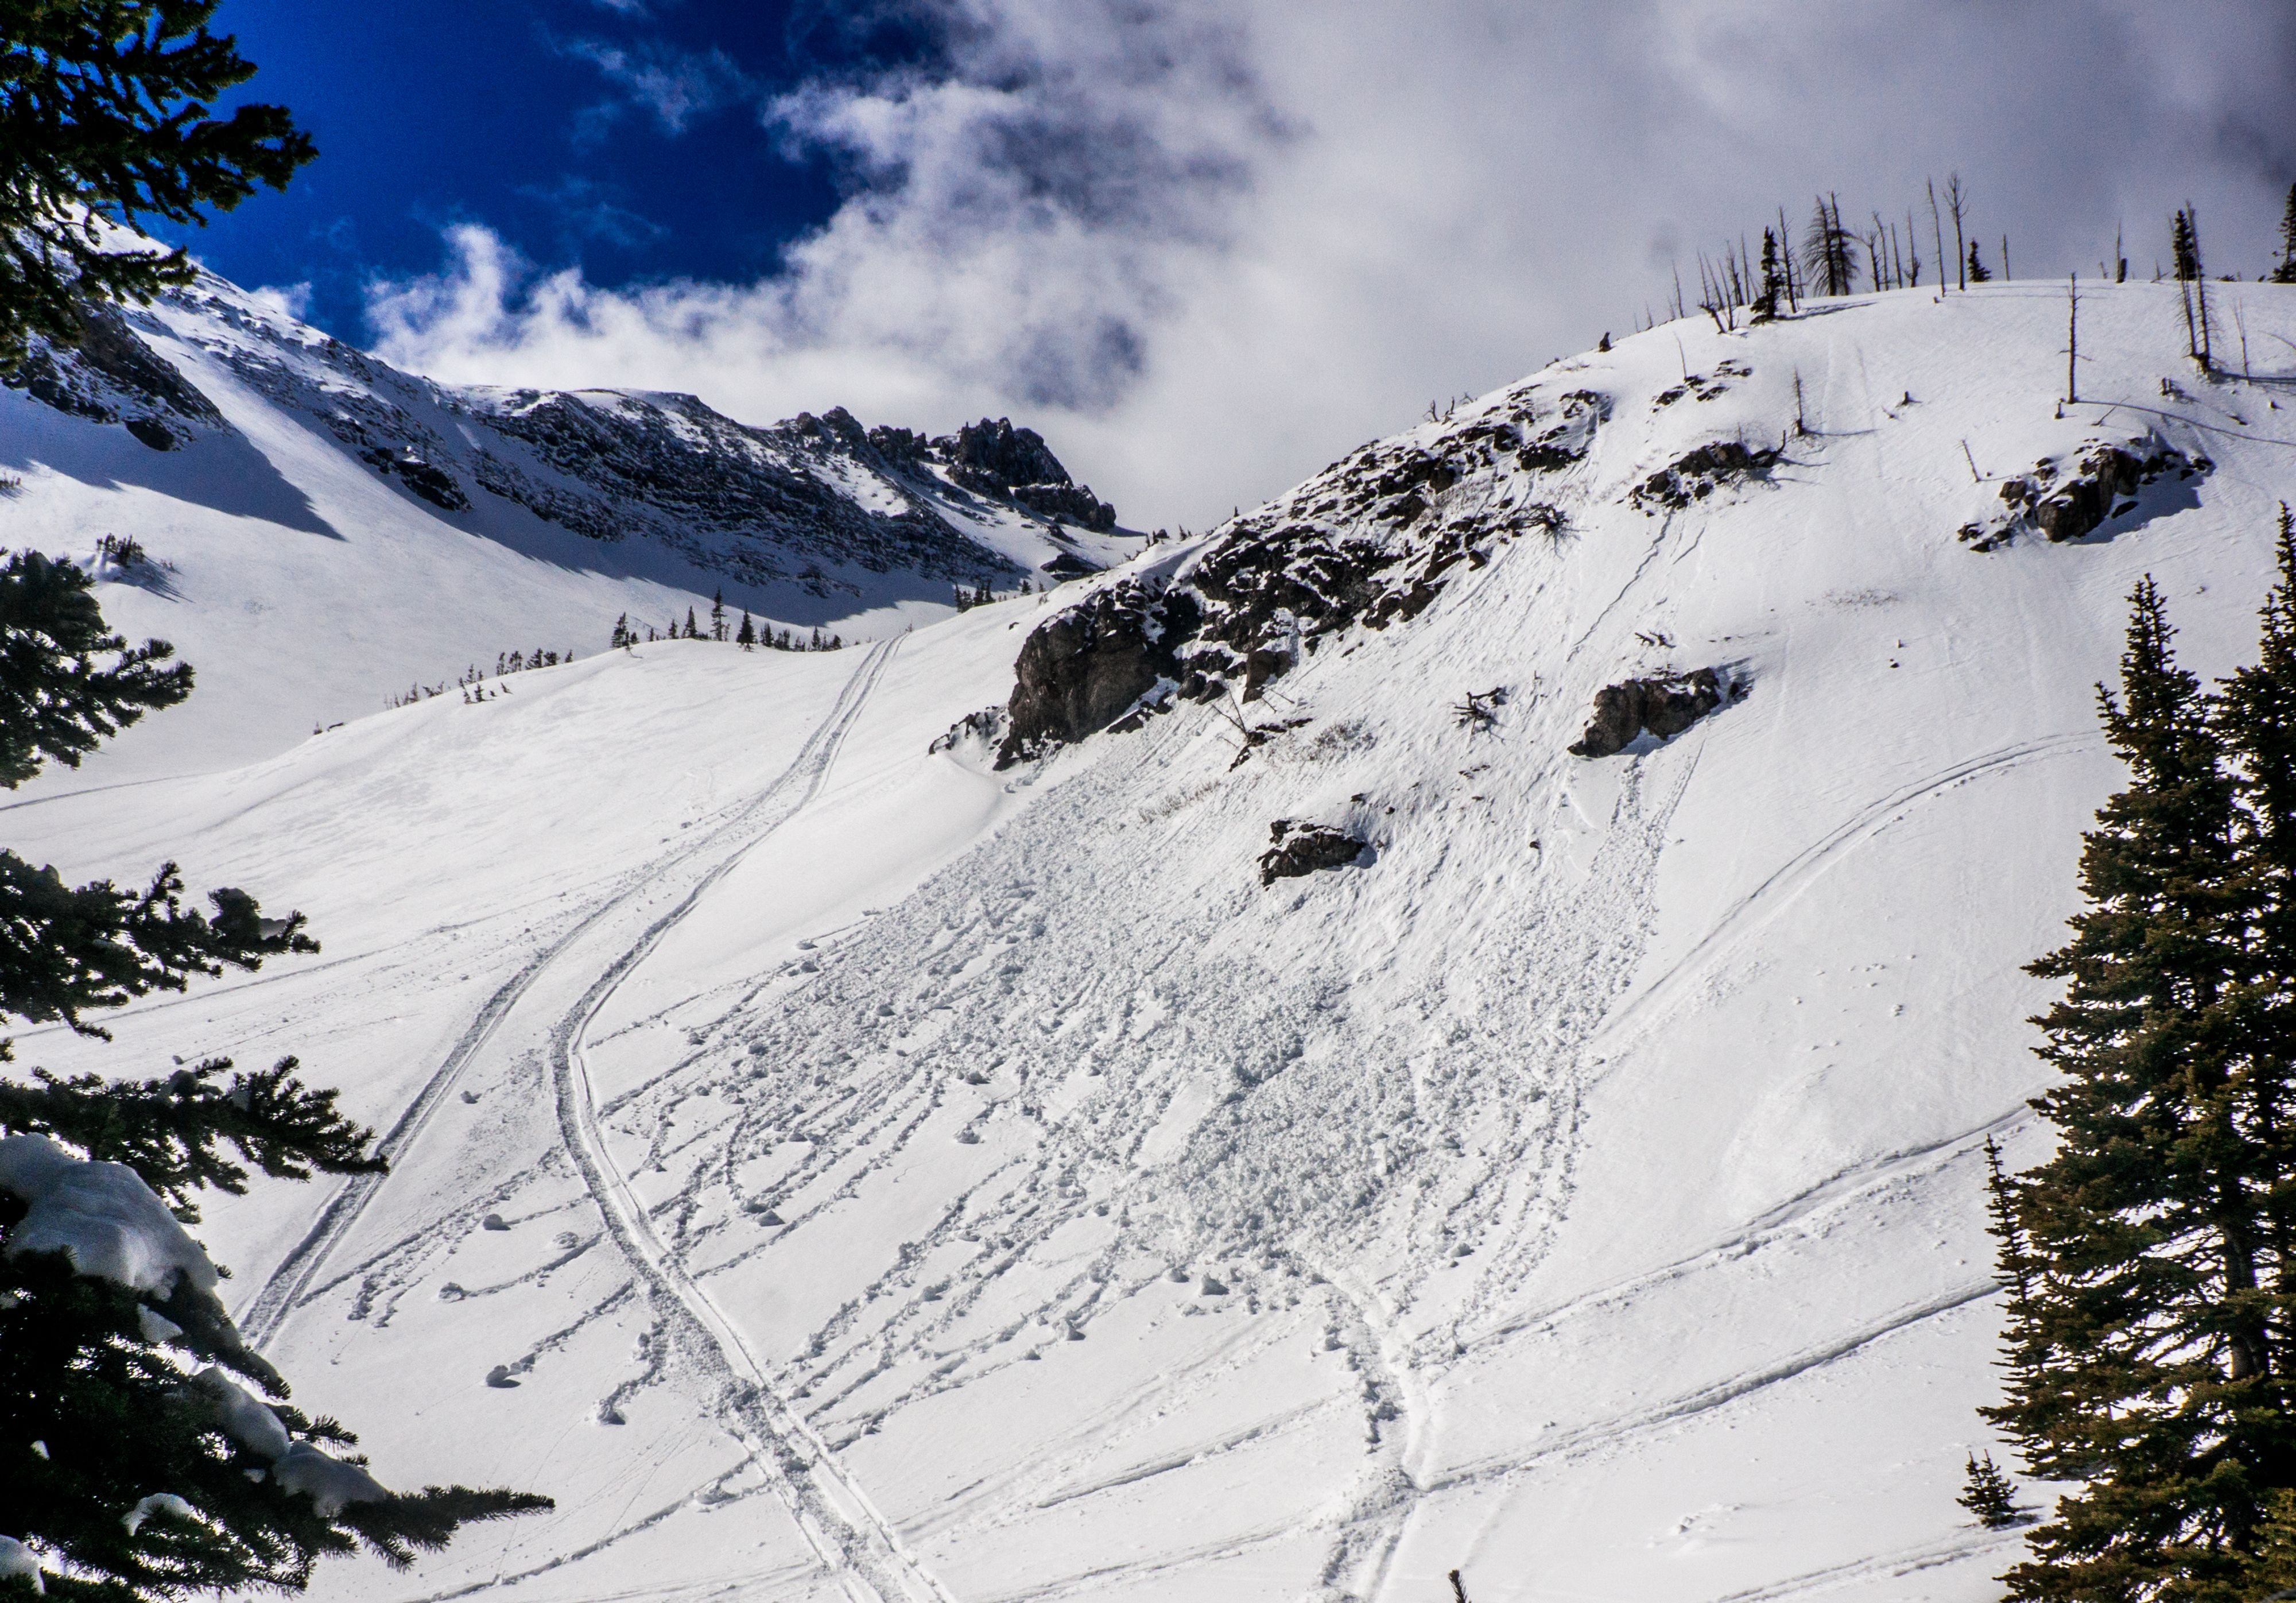 Snowballs rolling down a slope are a dependable sign that the sun is warming and weakening the snowpack.